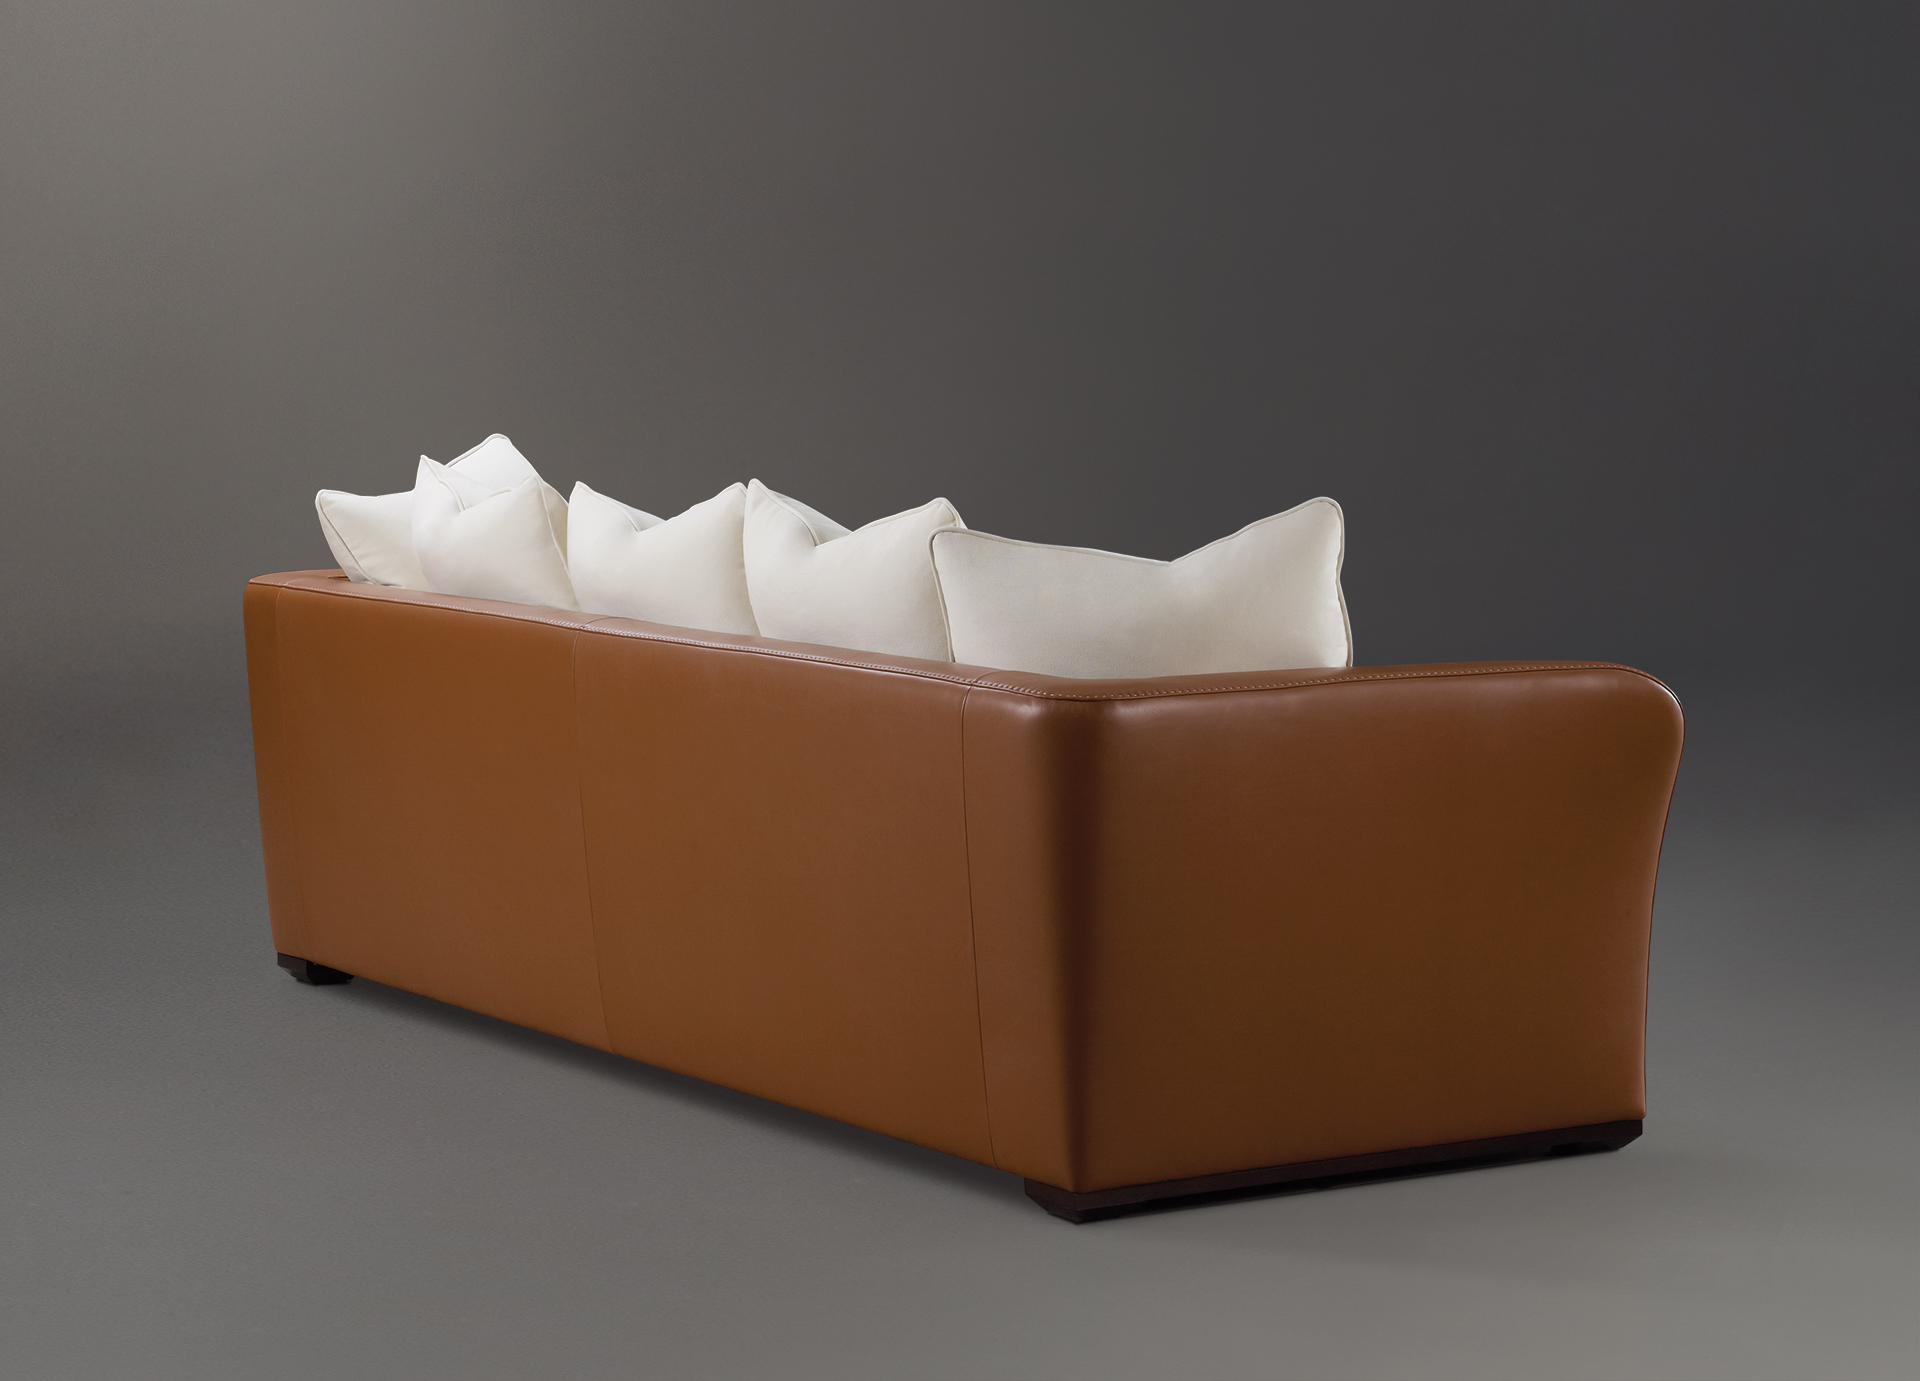 Shangri-la is a wooden sofa covered in leather and fabric, from Promemoria's catalogue | Promemoria